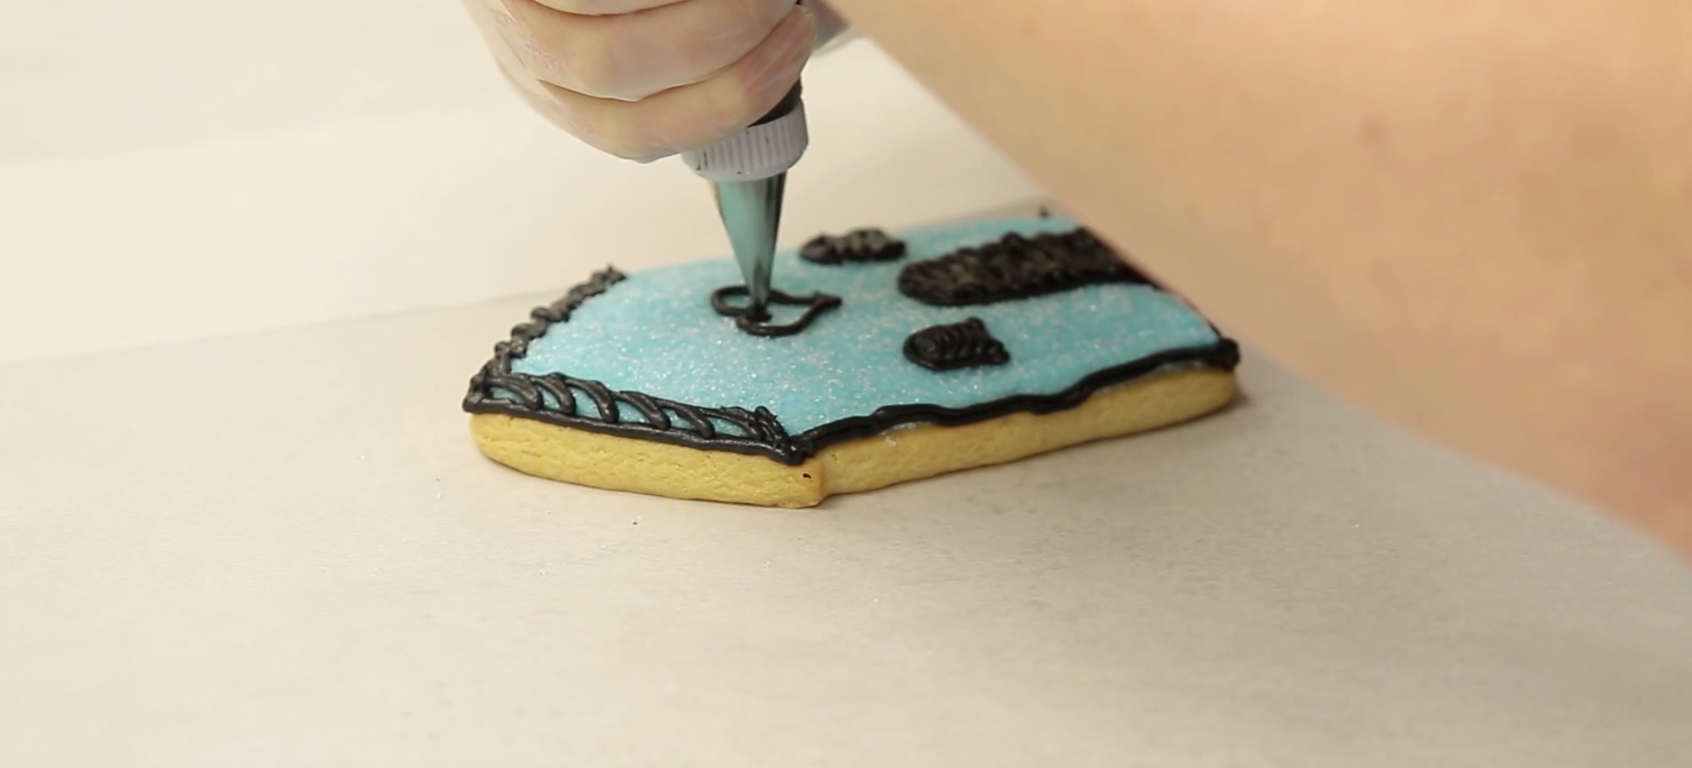 Birdhouse Cookie Decorating Tips with Barbee Cookies